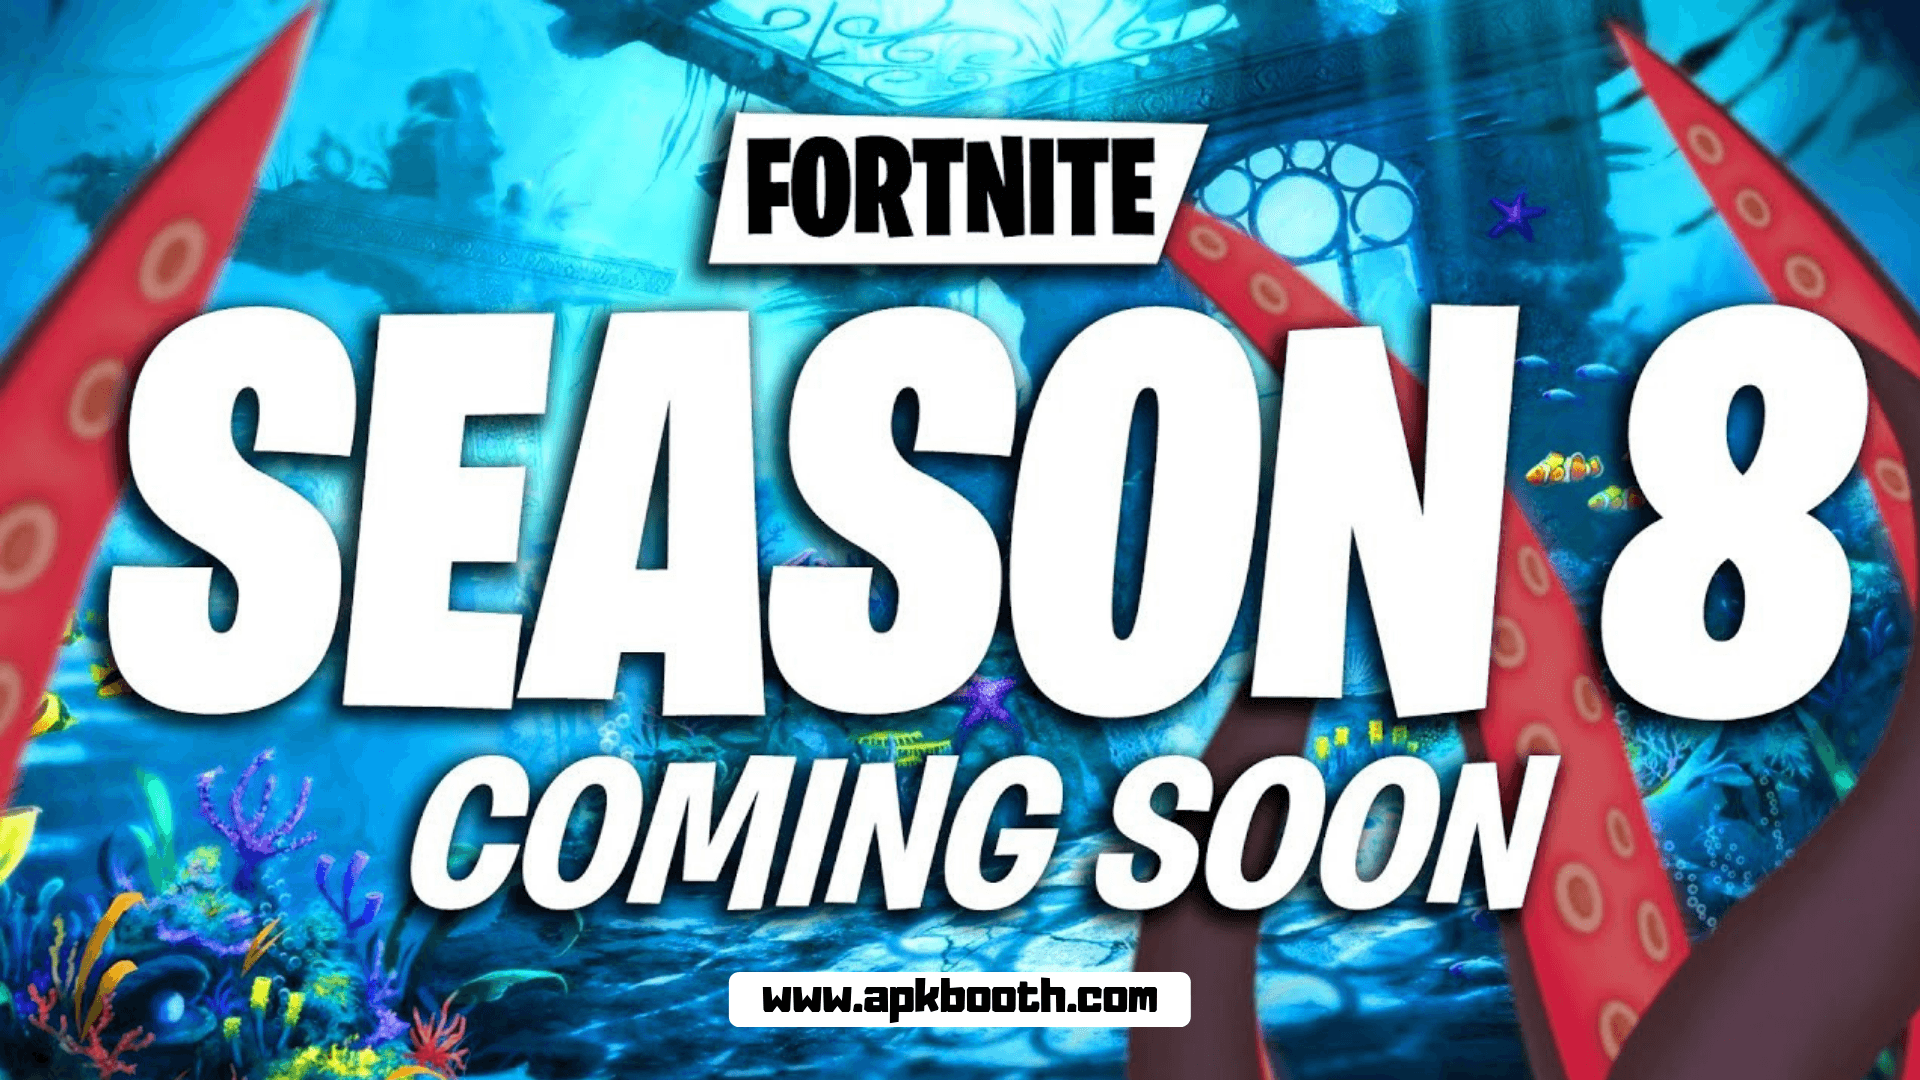 fortnite season 8